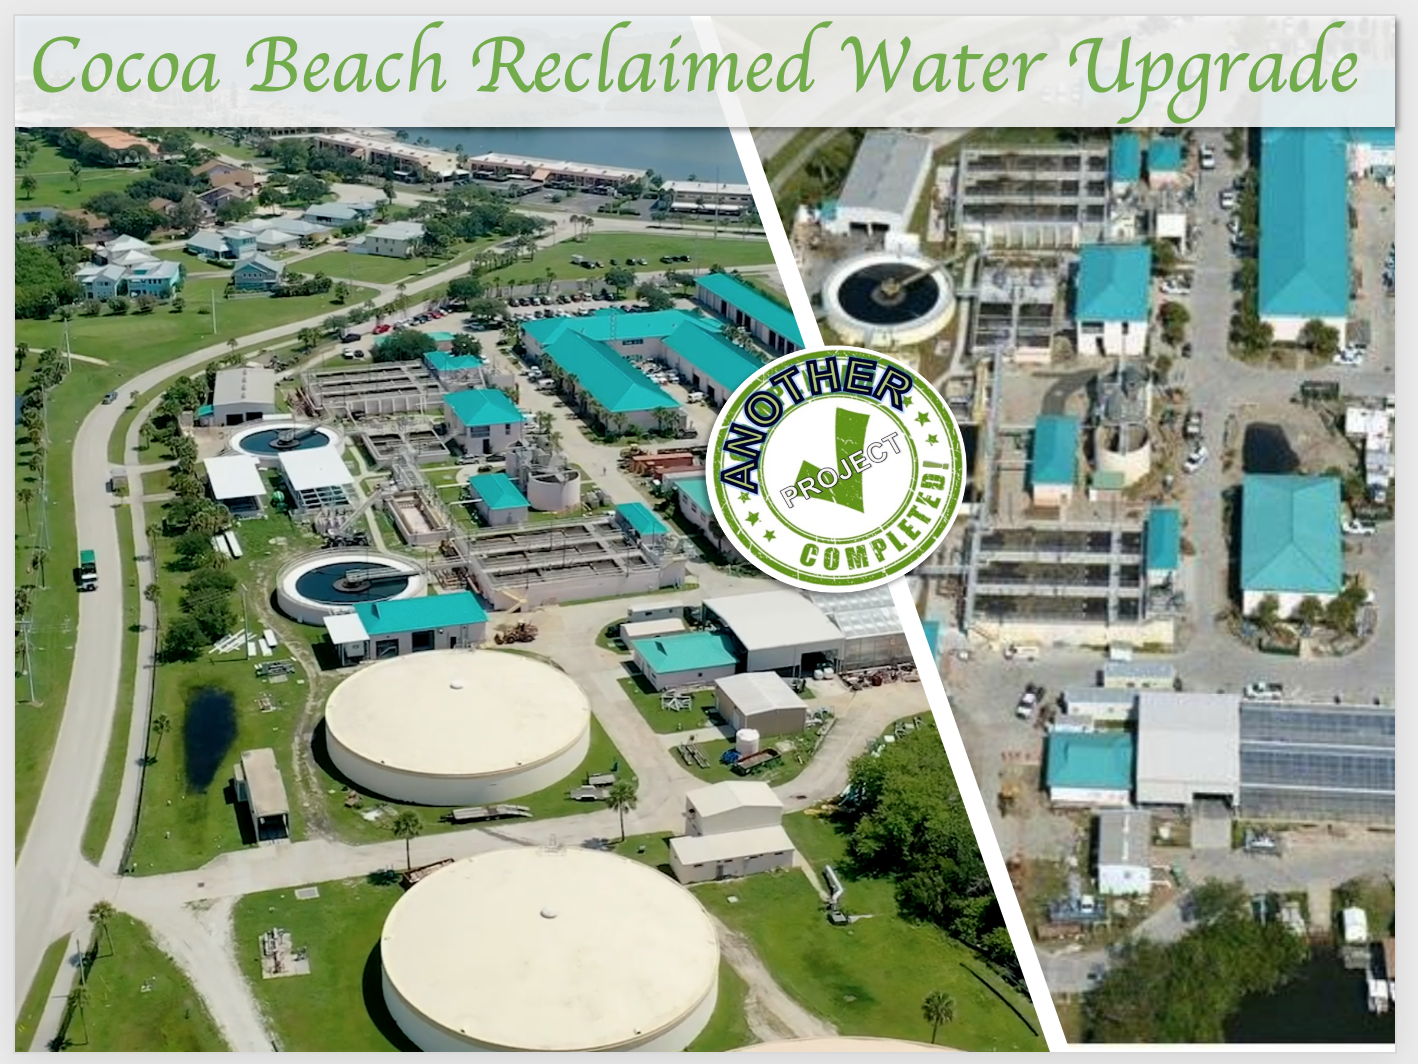 Cocoa Beach Reclaimed Water upgrade